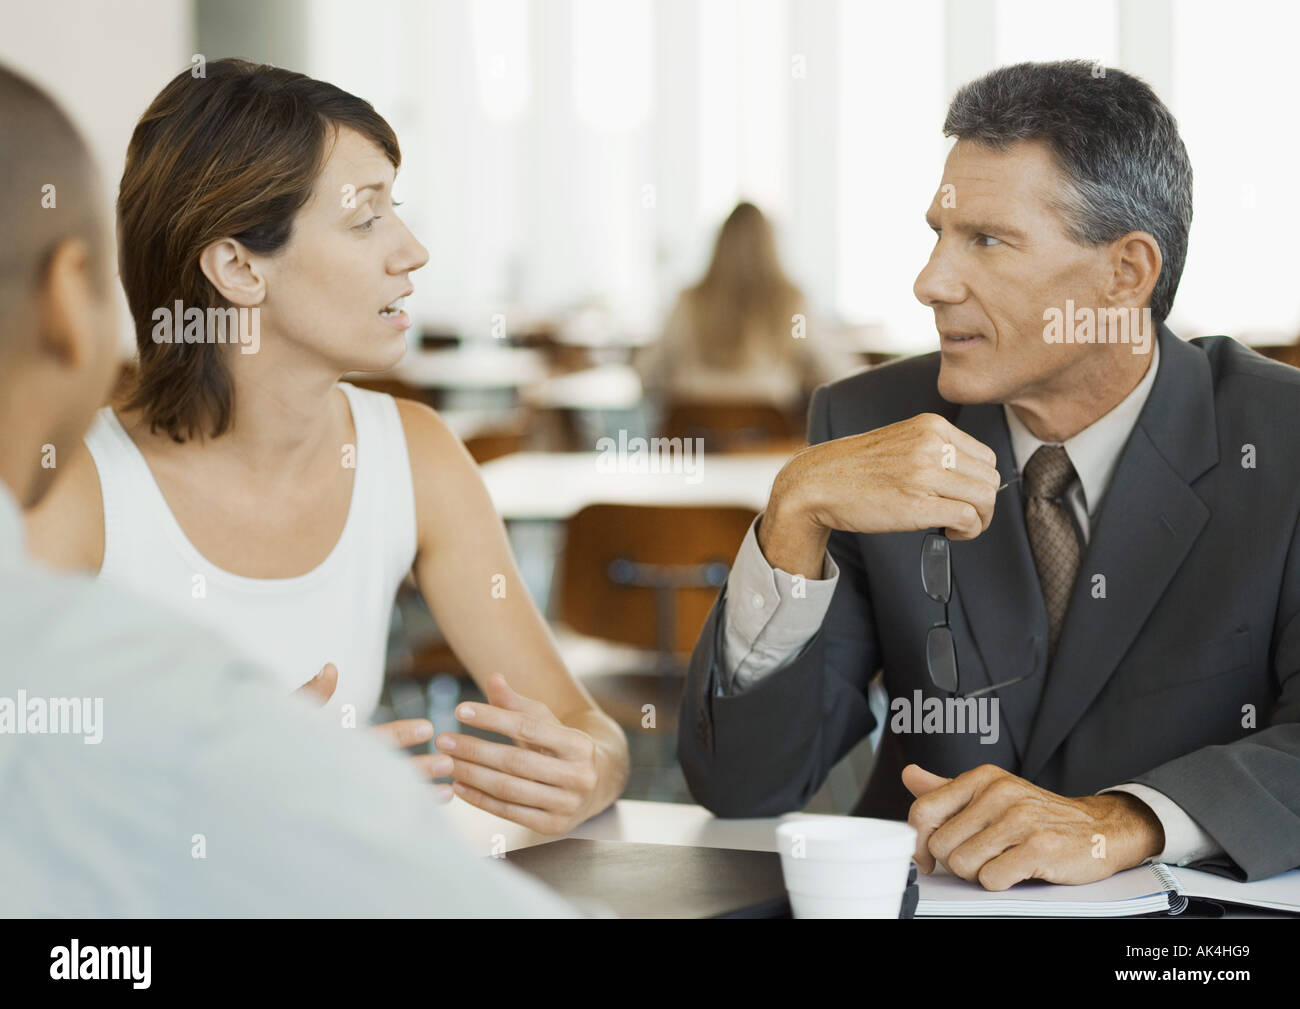 Business colleagues talking in cafeteria - Stock Image